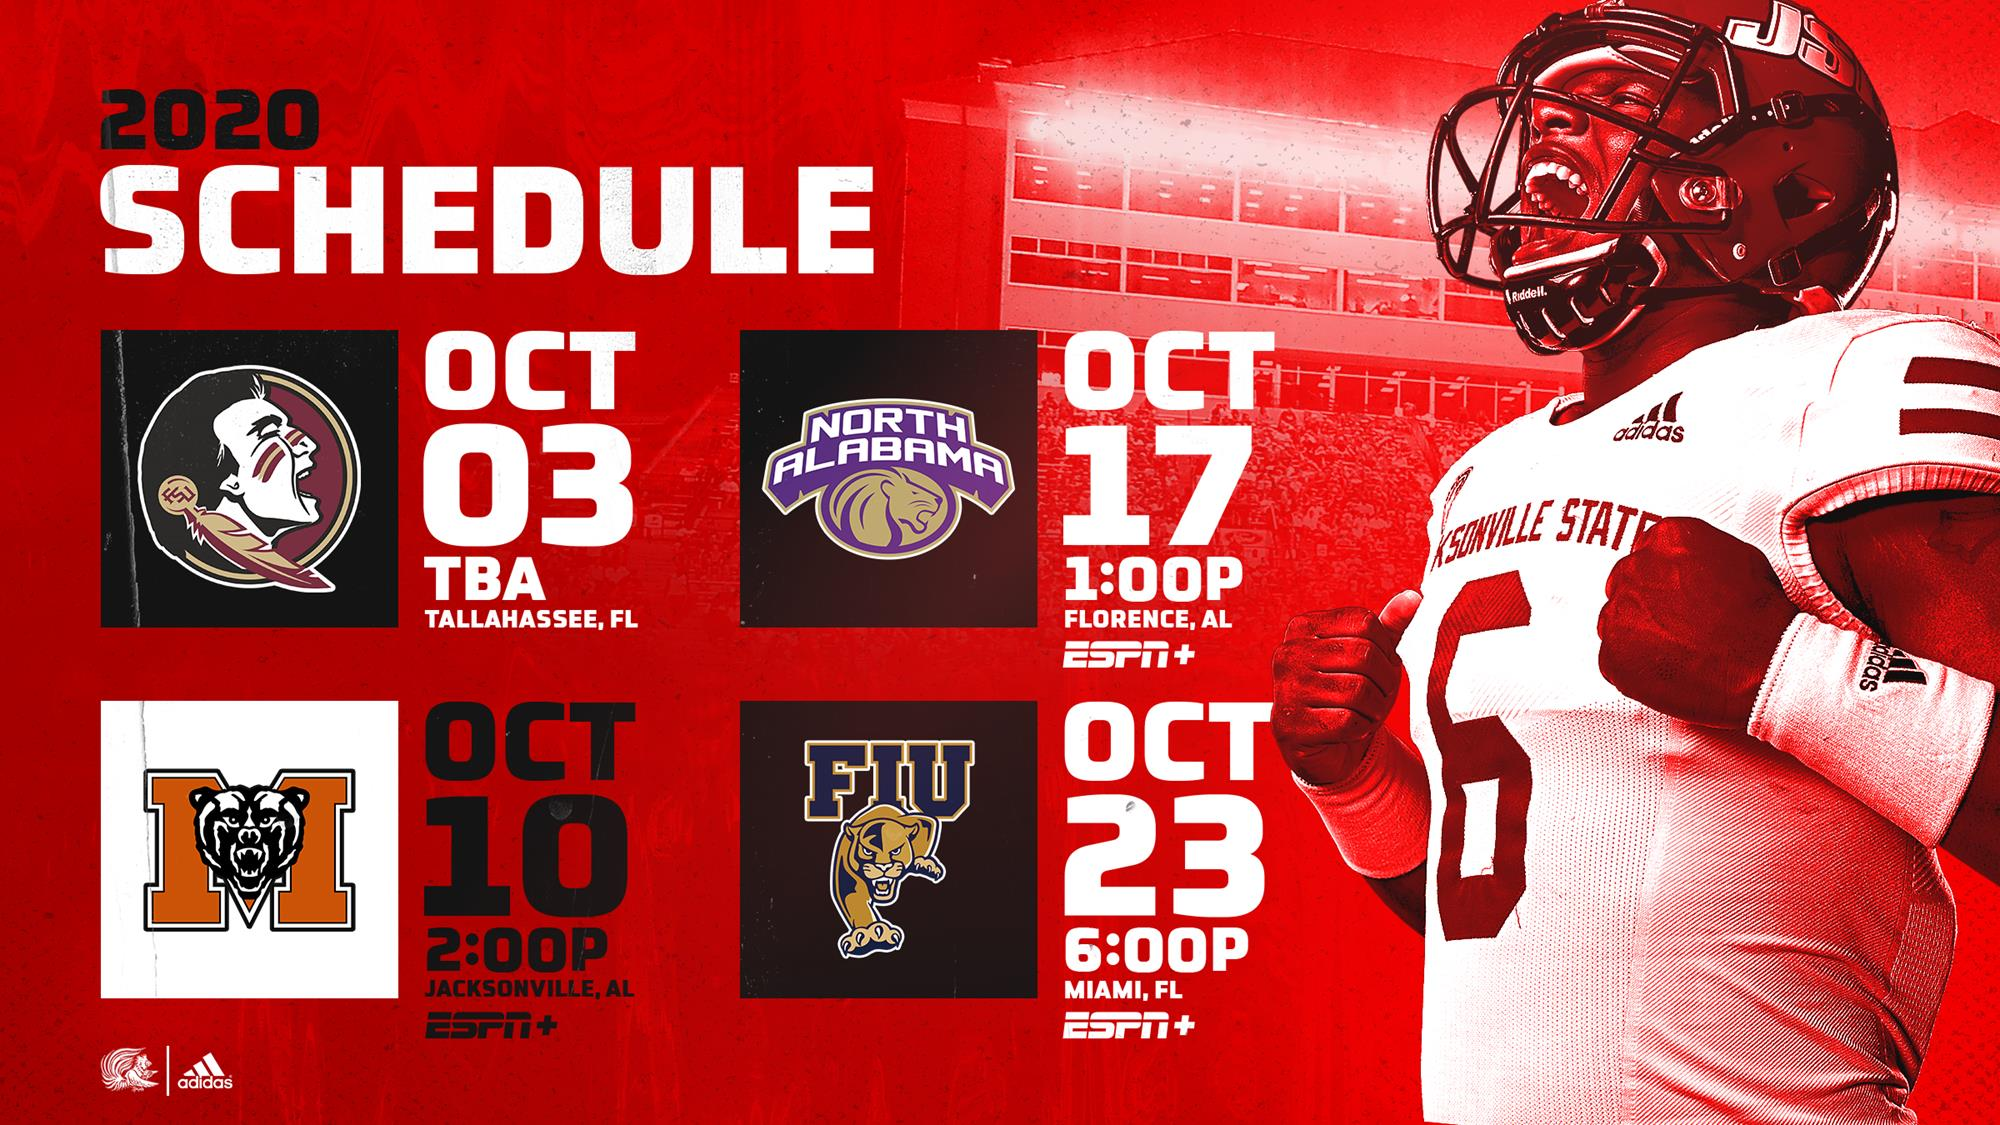 Jsu S Fall Schedule Set Home Game Policies Announced Jacksonville State University Athletics